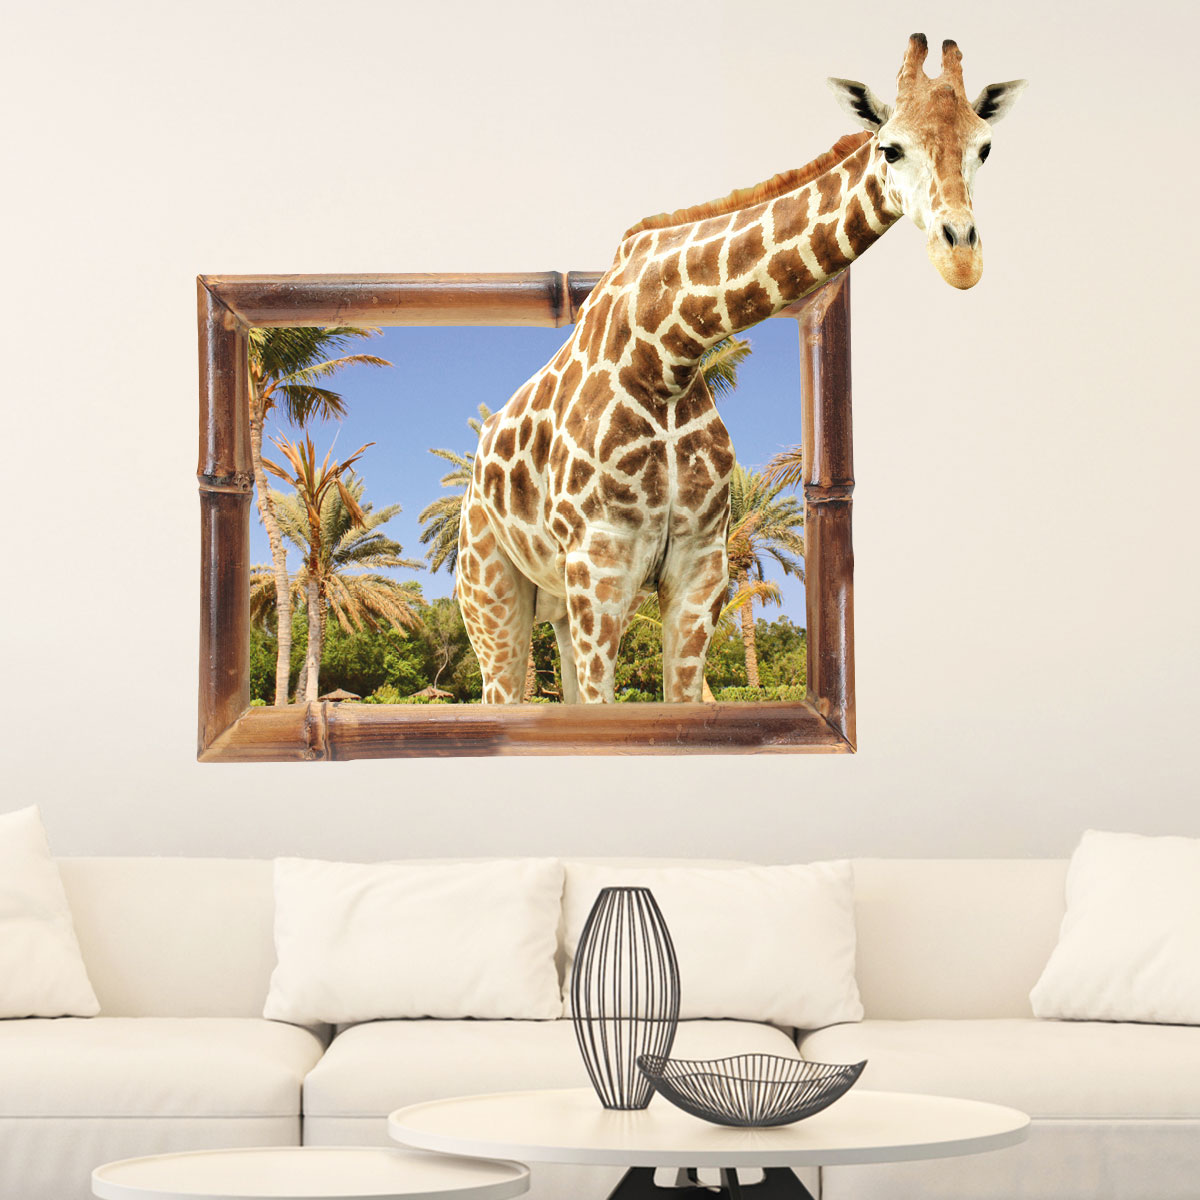 sticker trompe l 39 oeil animaux girafe stickers salon design ambiance sticker. Black Bedroom Furniture Sets. Home Design Ideas